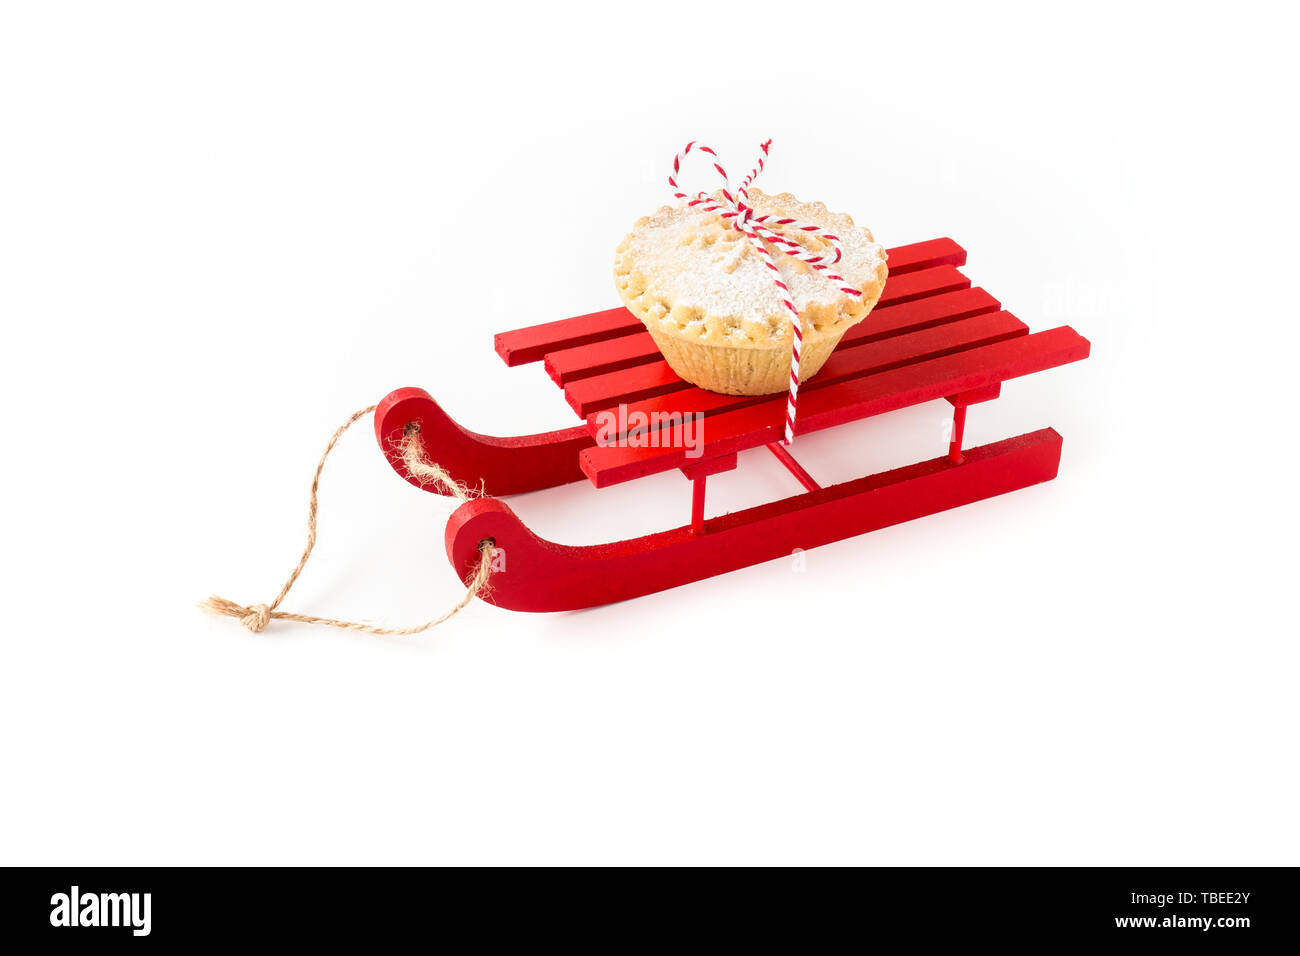 Red wooden sledge with Mince Pie isolated on white background. Angled view. - Stock Image